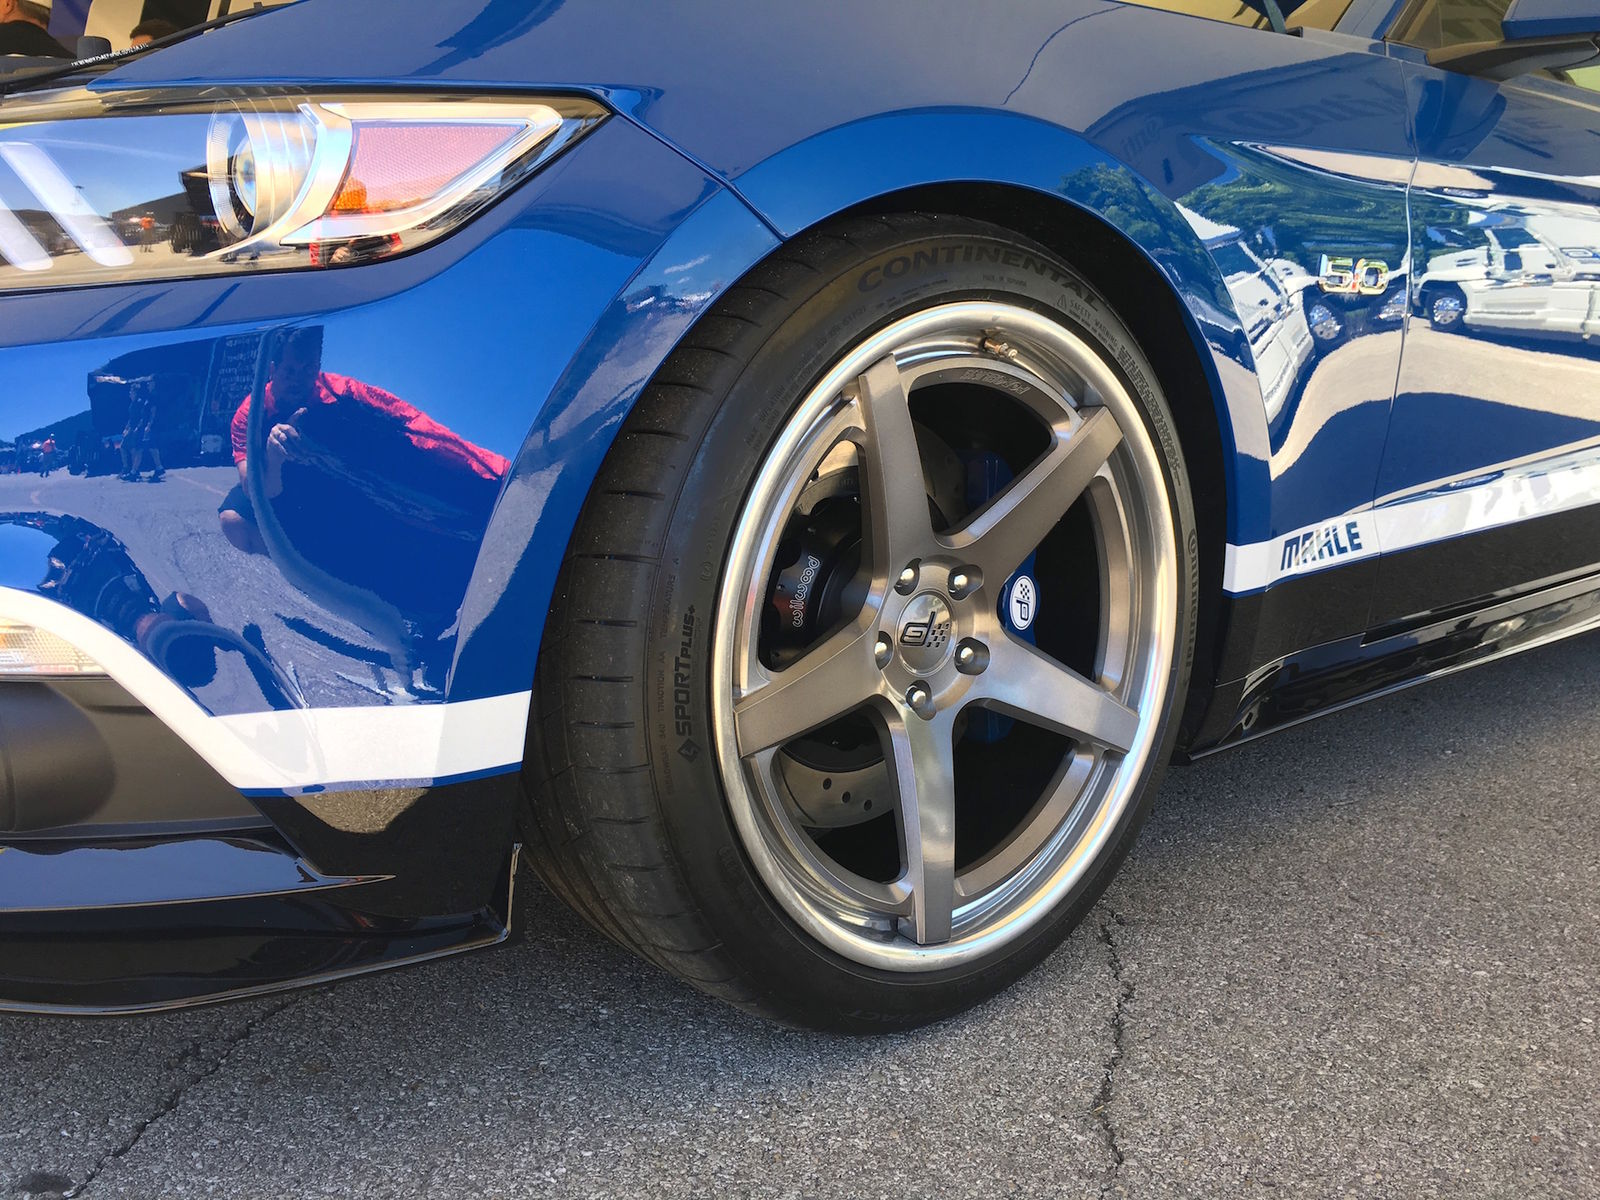 2017 Ford Mustang   Petty's Garage 1000HP Mahle Mustang GT on Forgeline CF3C-SL Wheels